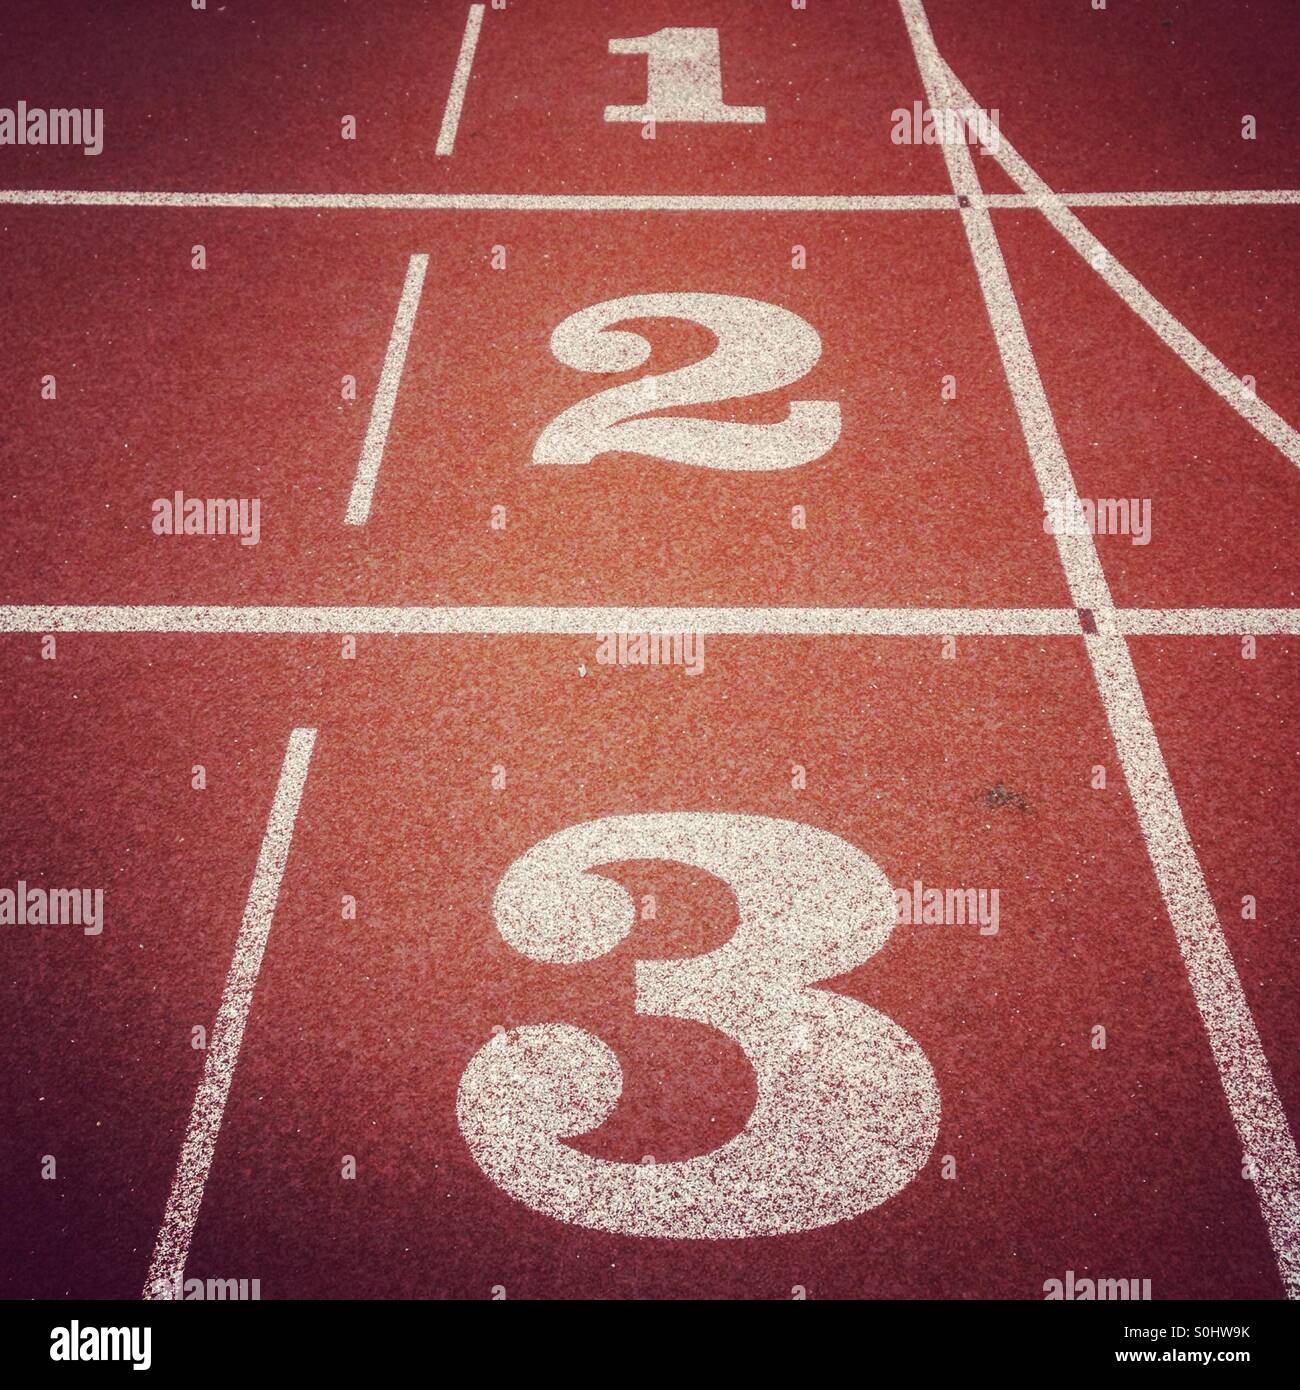 Athletics Track Numbers - Stock Image